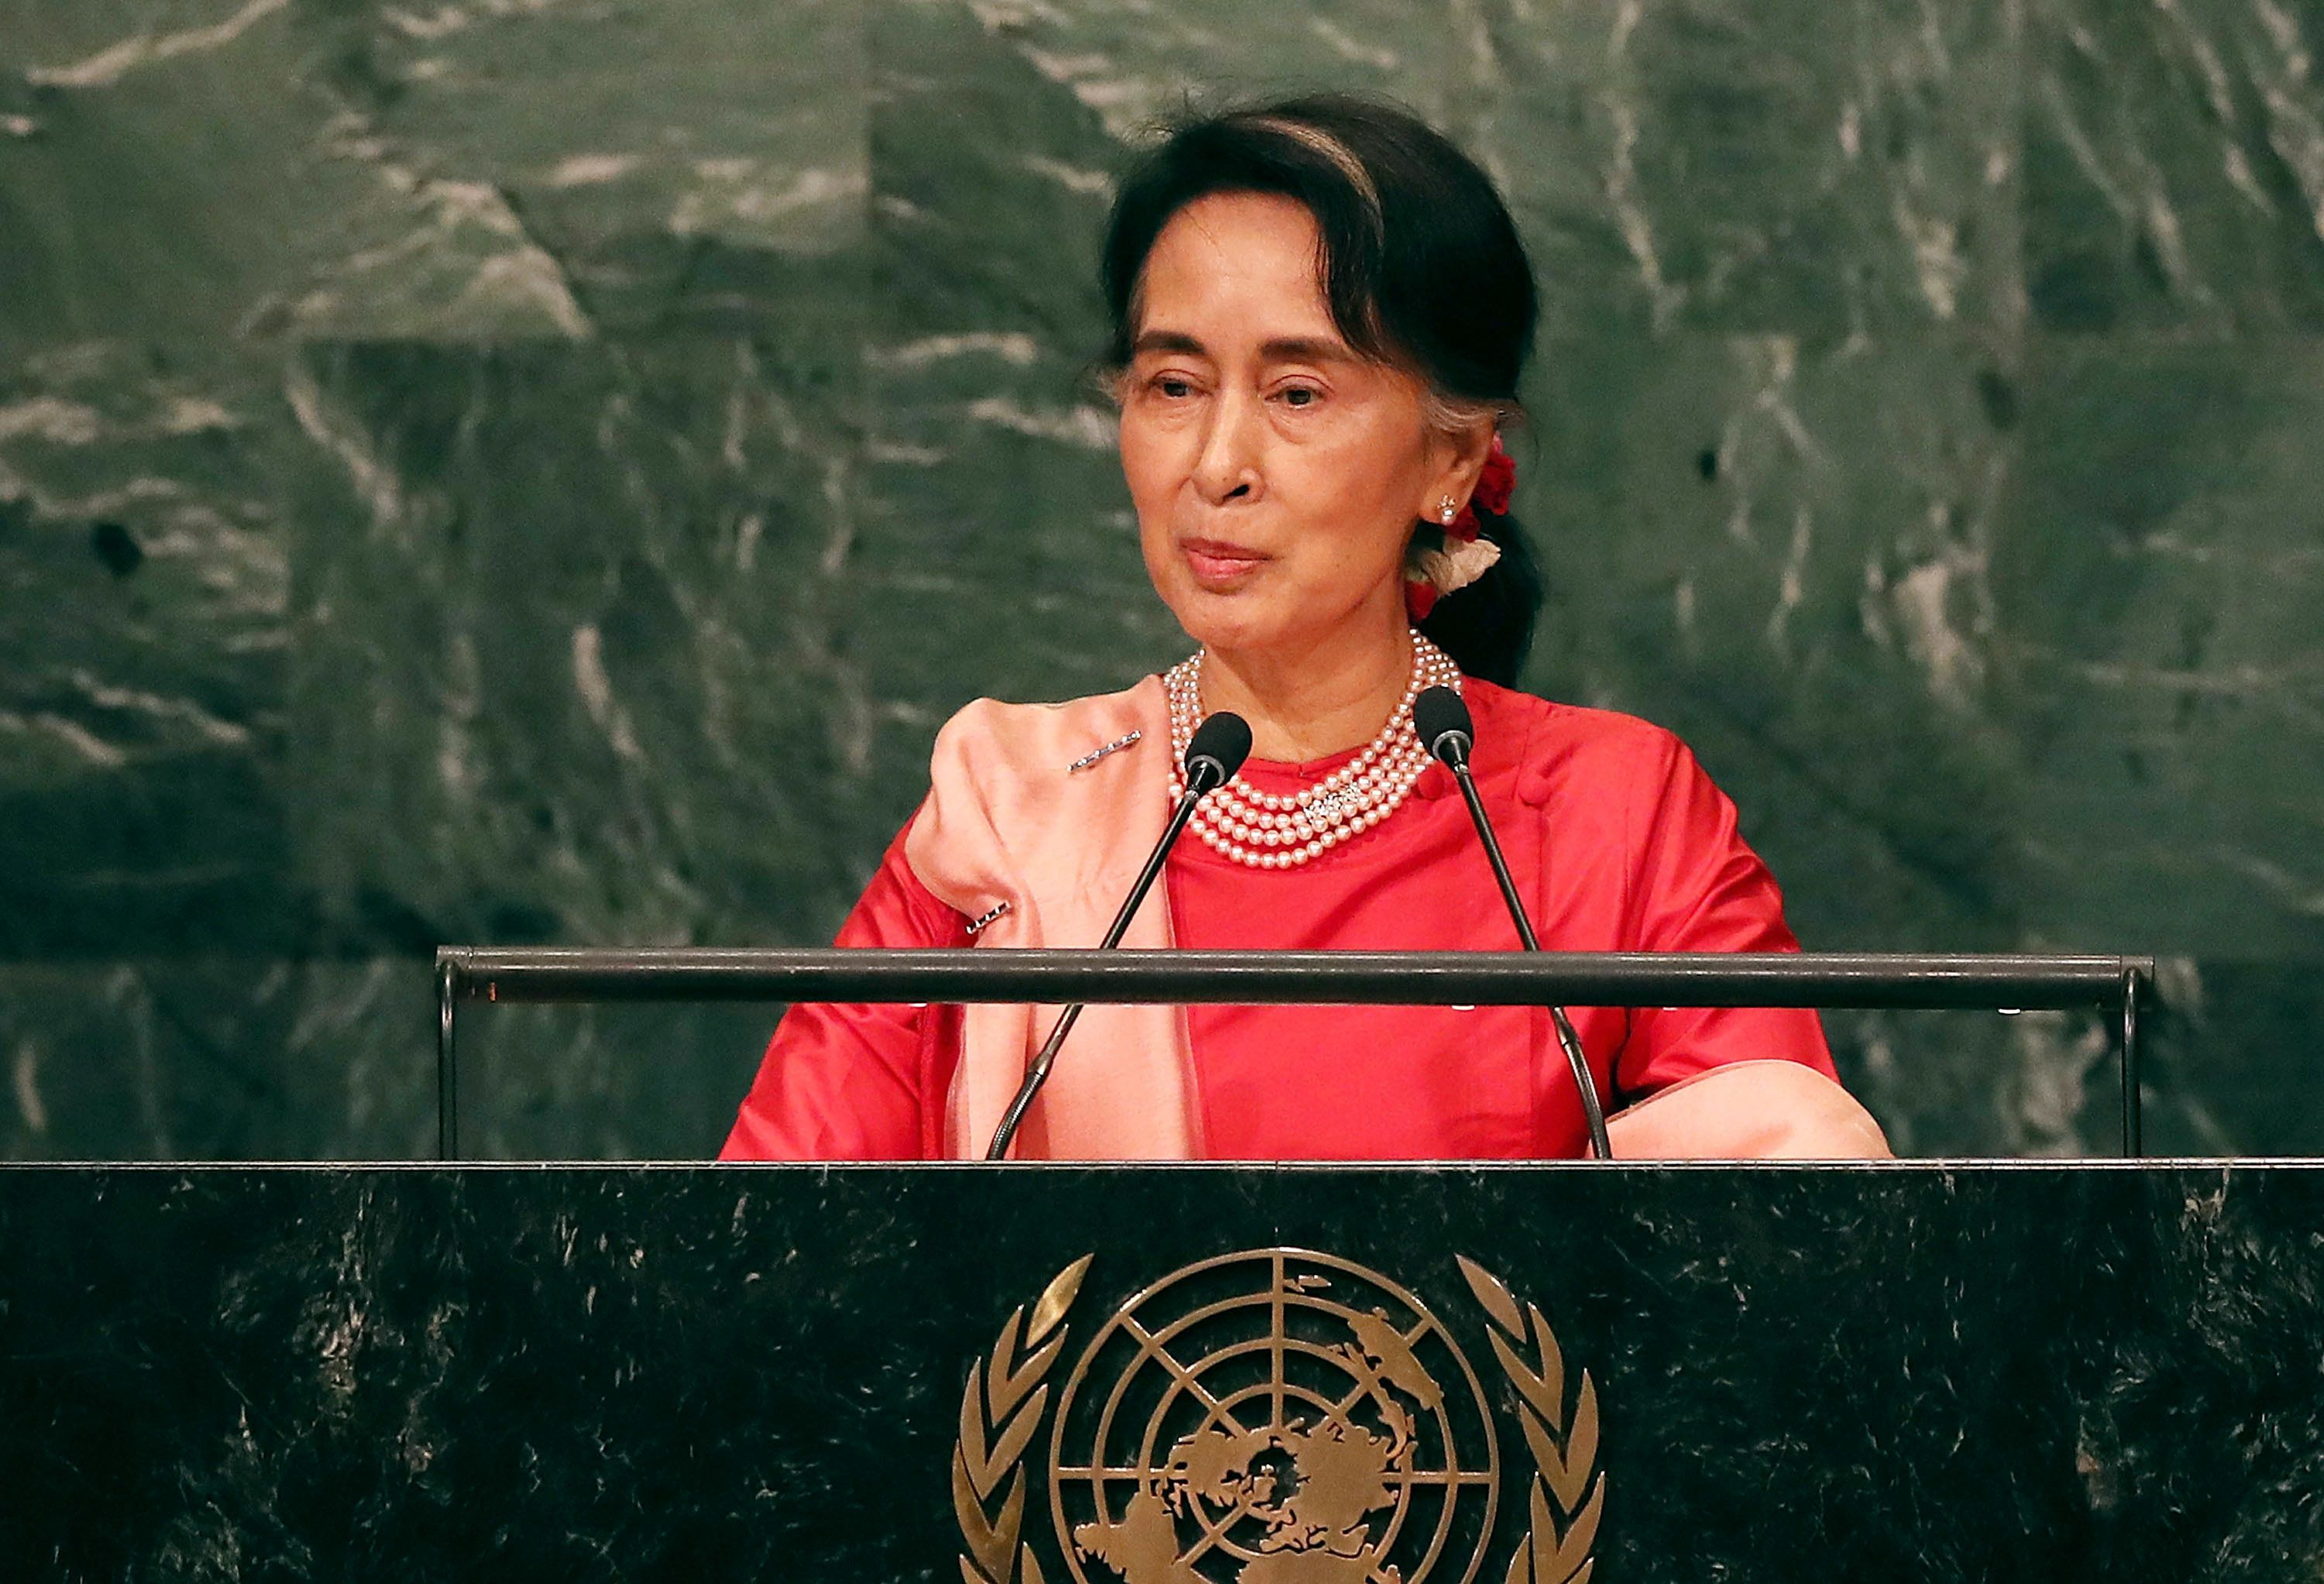 NEW YORK, NY - SEPTEMBER 21:  Myanmar leader Aung San Suu Kyi addresses the General Assembly at the United Nations on September 21, 2016 in New York City. Presidents, prime ministers, monarchs and ministers are gathering this week for the United Nation's General Assembly's annual ministerial meeting.  (Photo by Spencer Platt/Getty Images)